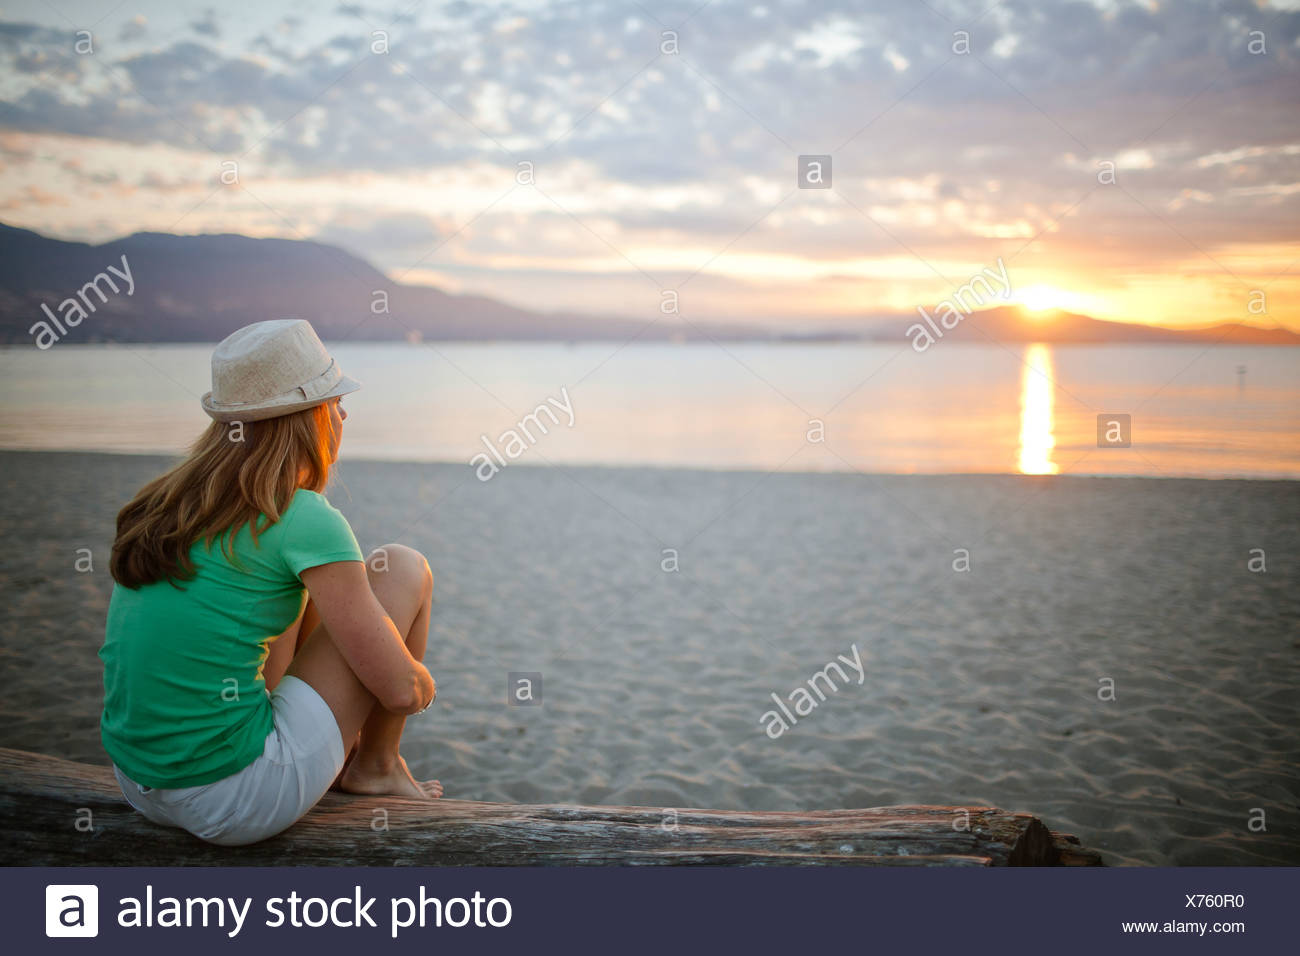 Kits Beach - Stock Image